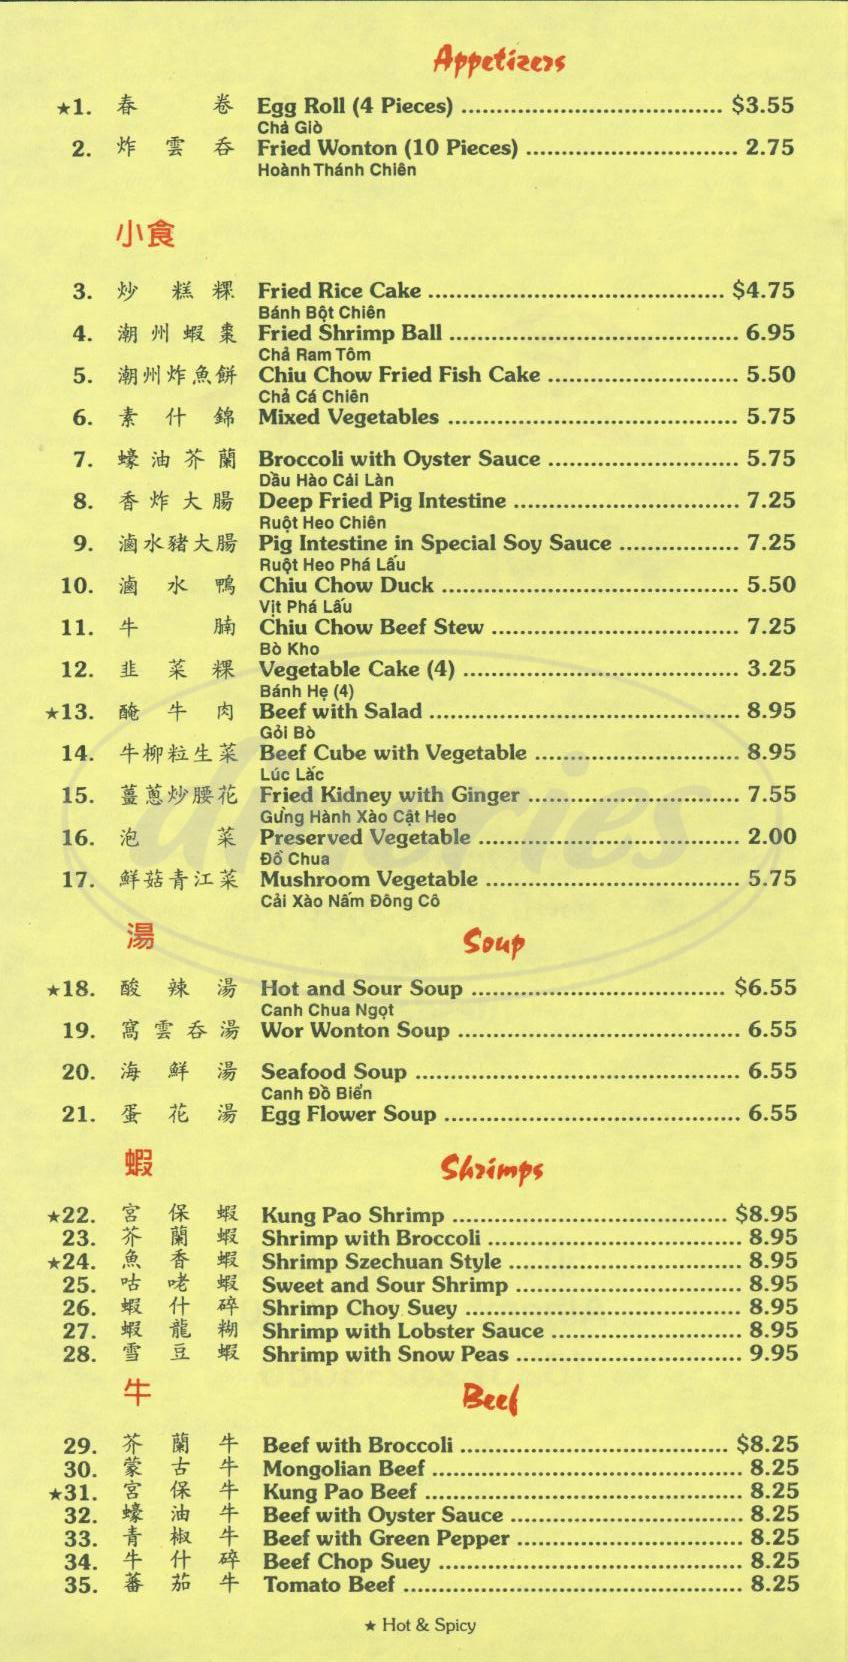 menu for Kim Chuy Restaurant